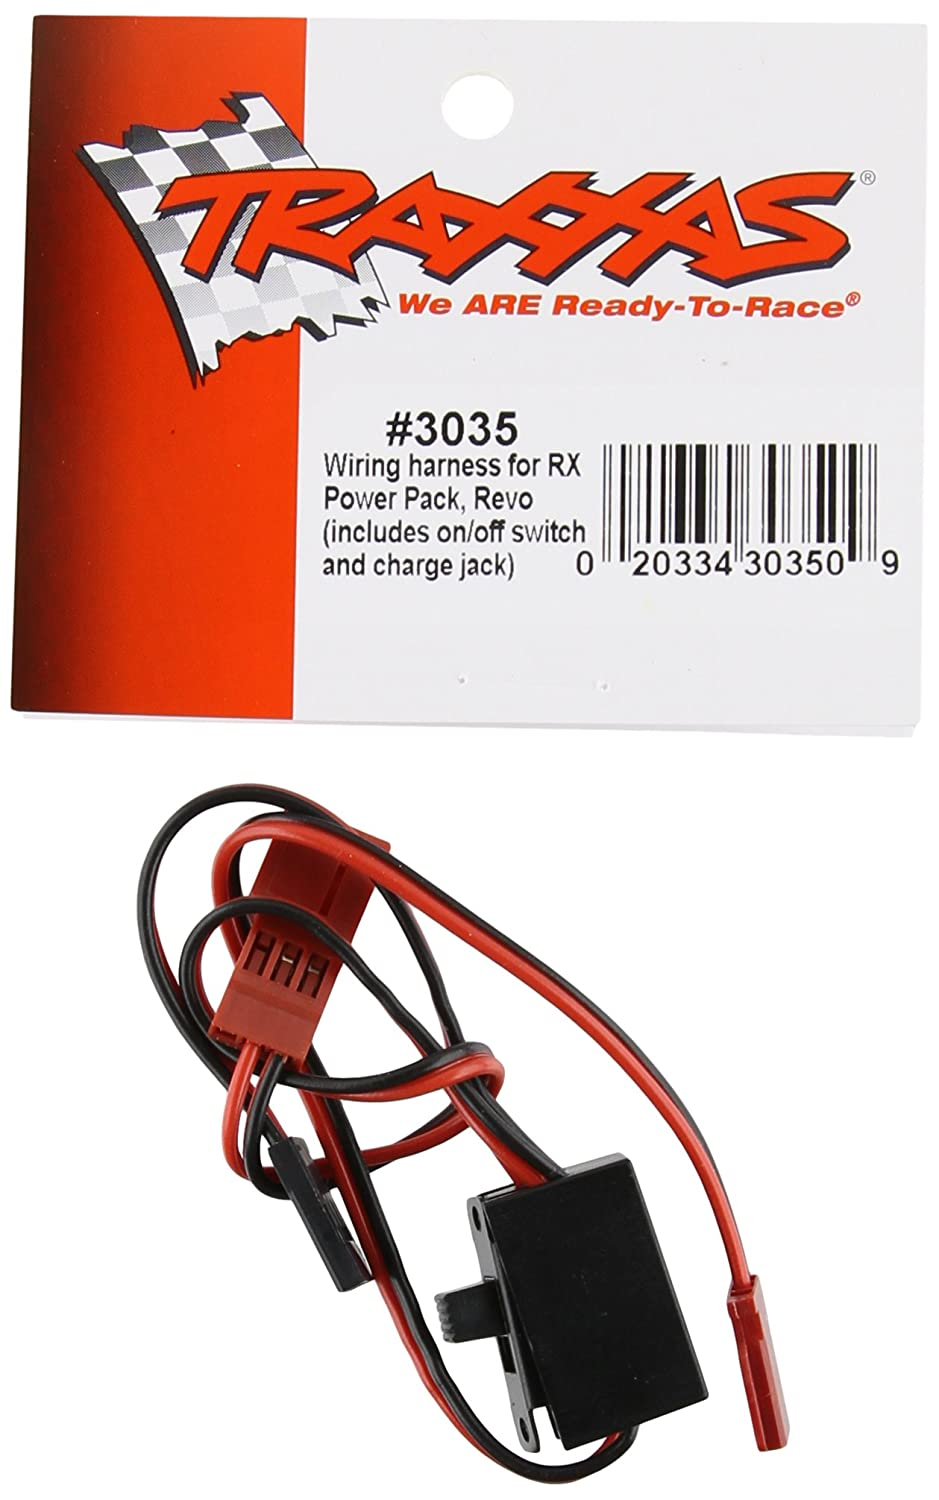 71uhbQCErNL._SL1500_ amazon com traxxas 3035 wiring harness for rx power pack, revo traxxas wiring harness at gsmx.co